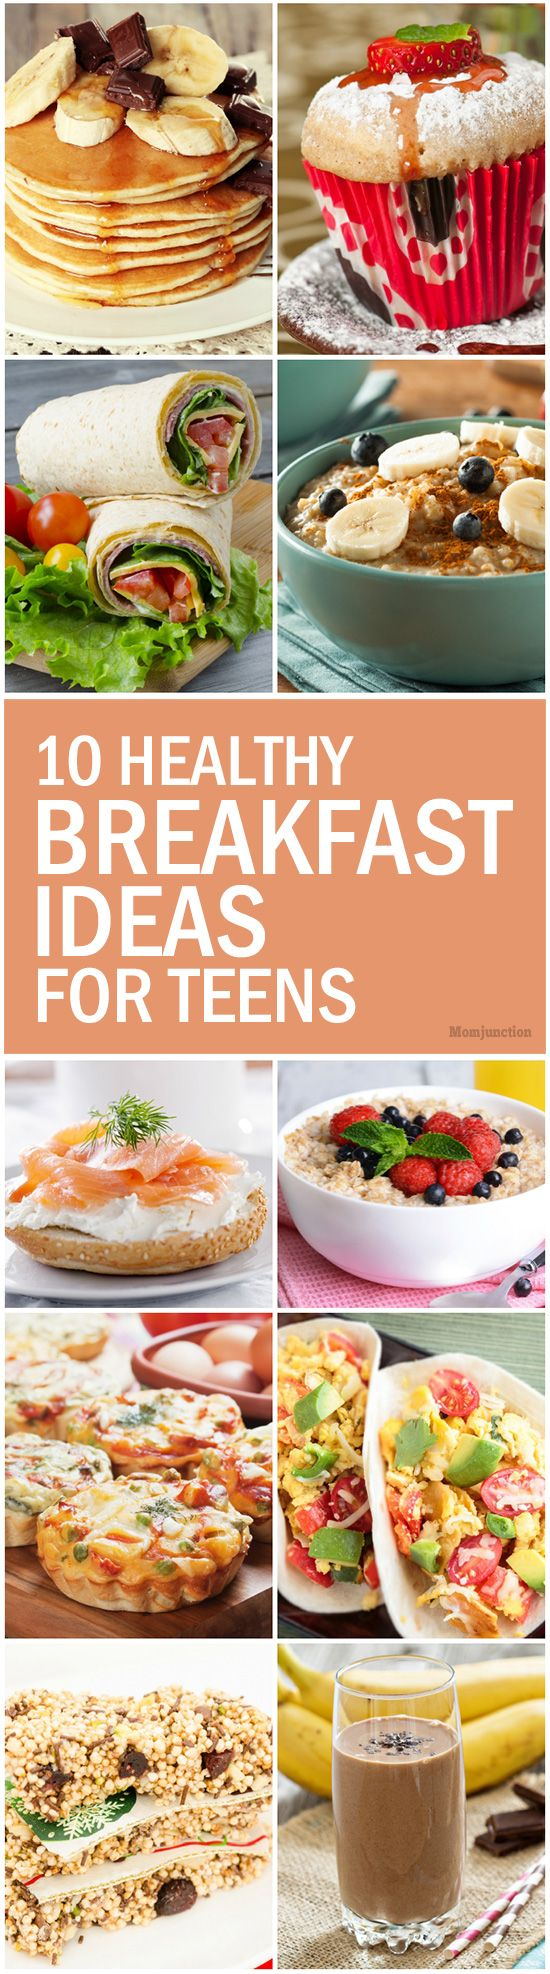 Ten simple recipes for whipping up the perfect power breakfast